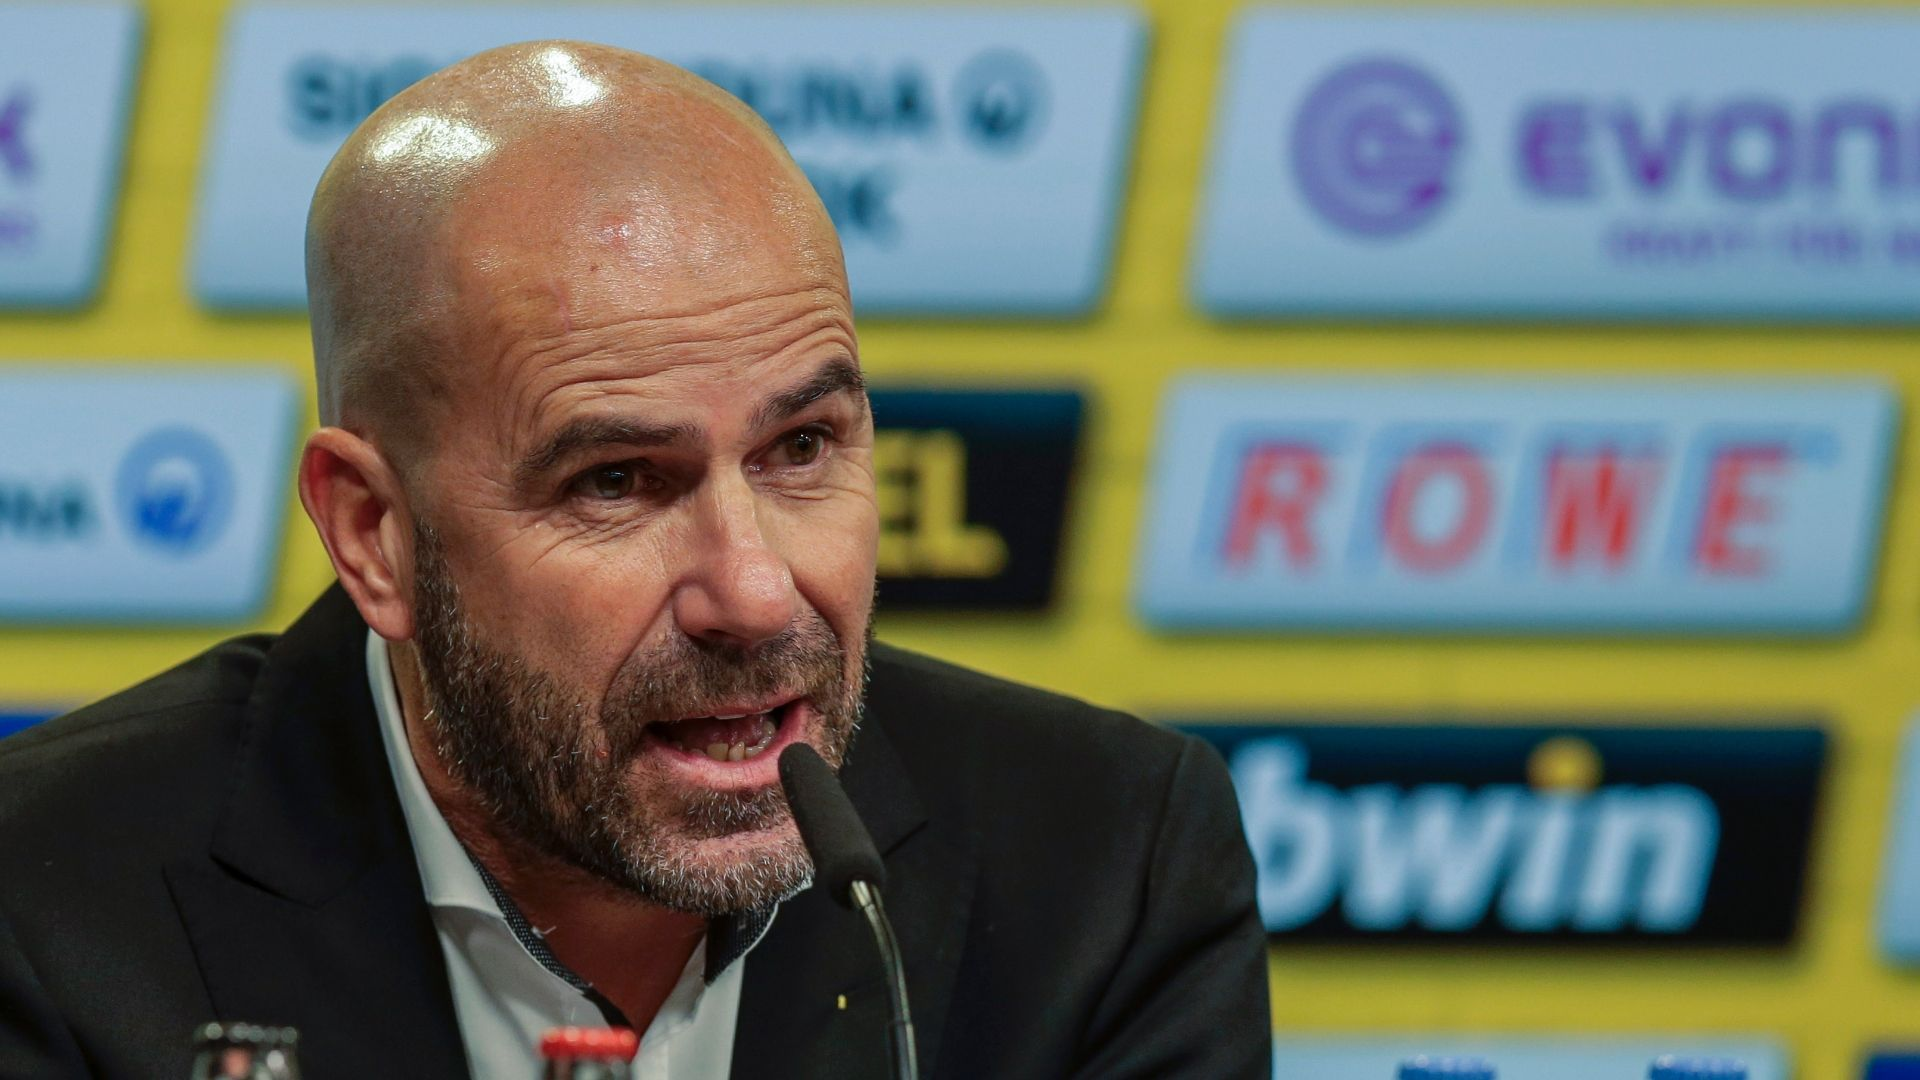 Borussia Dortmund coach Peter Bosz won't 'waste thought' on job fears